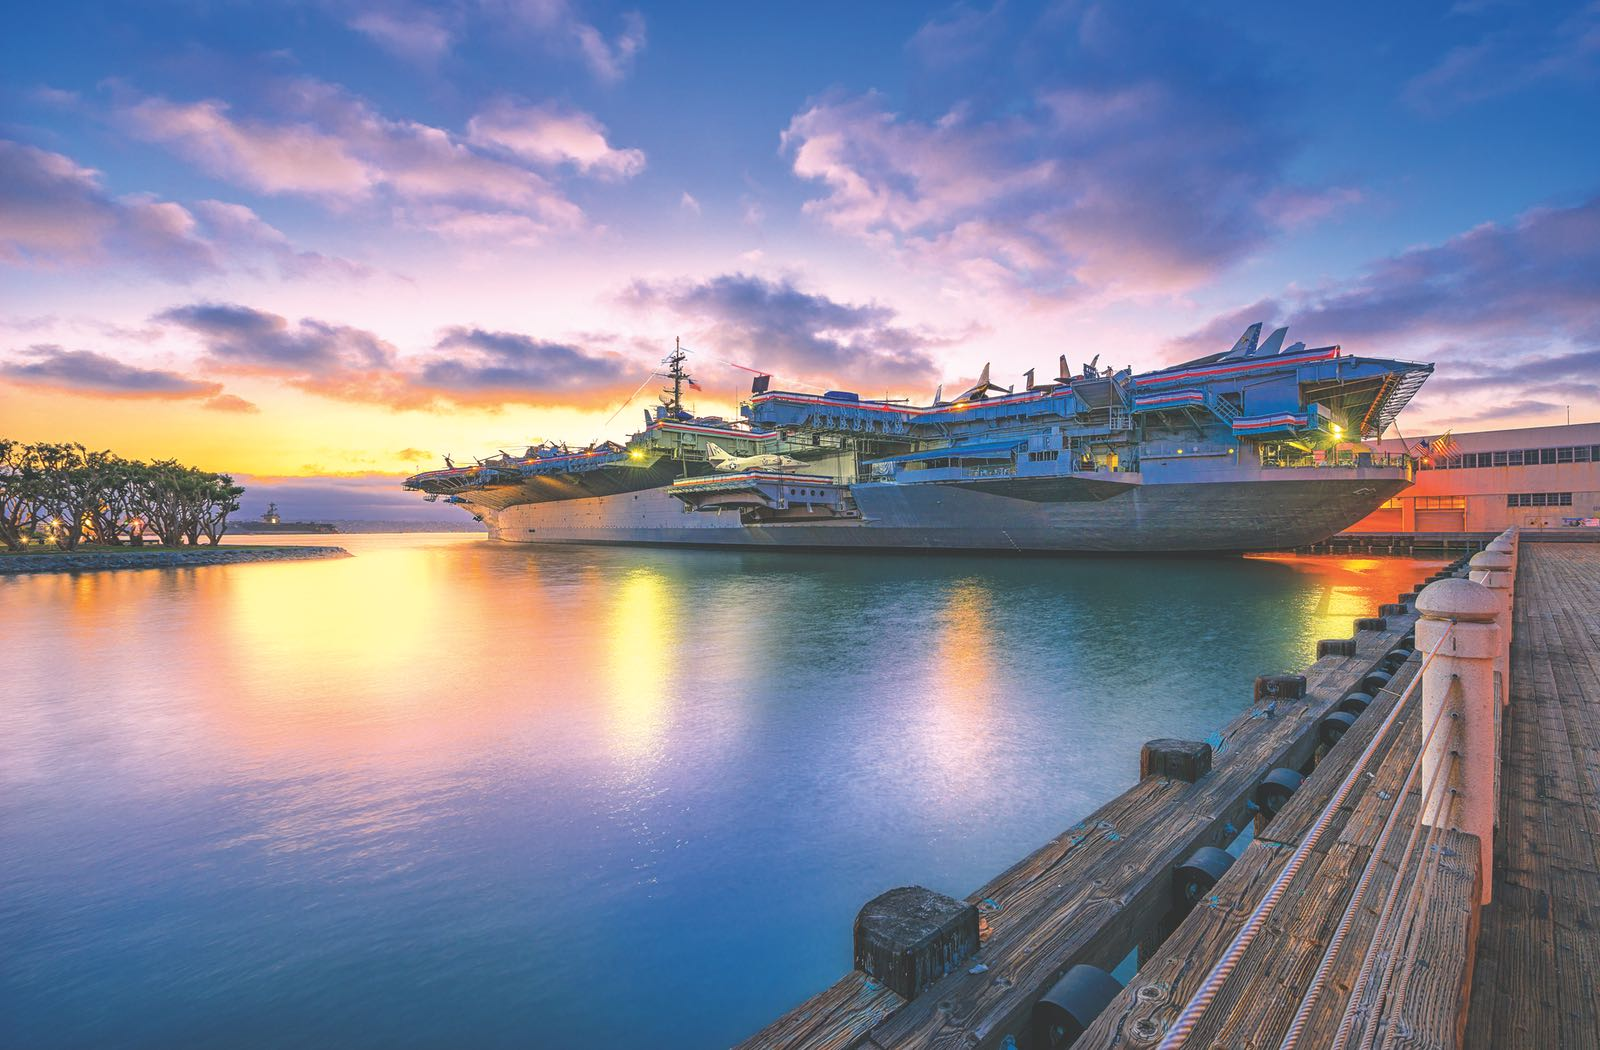 USS Midway Museum - Top Things to Do in San Diego - Memorial Day Weekend